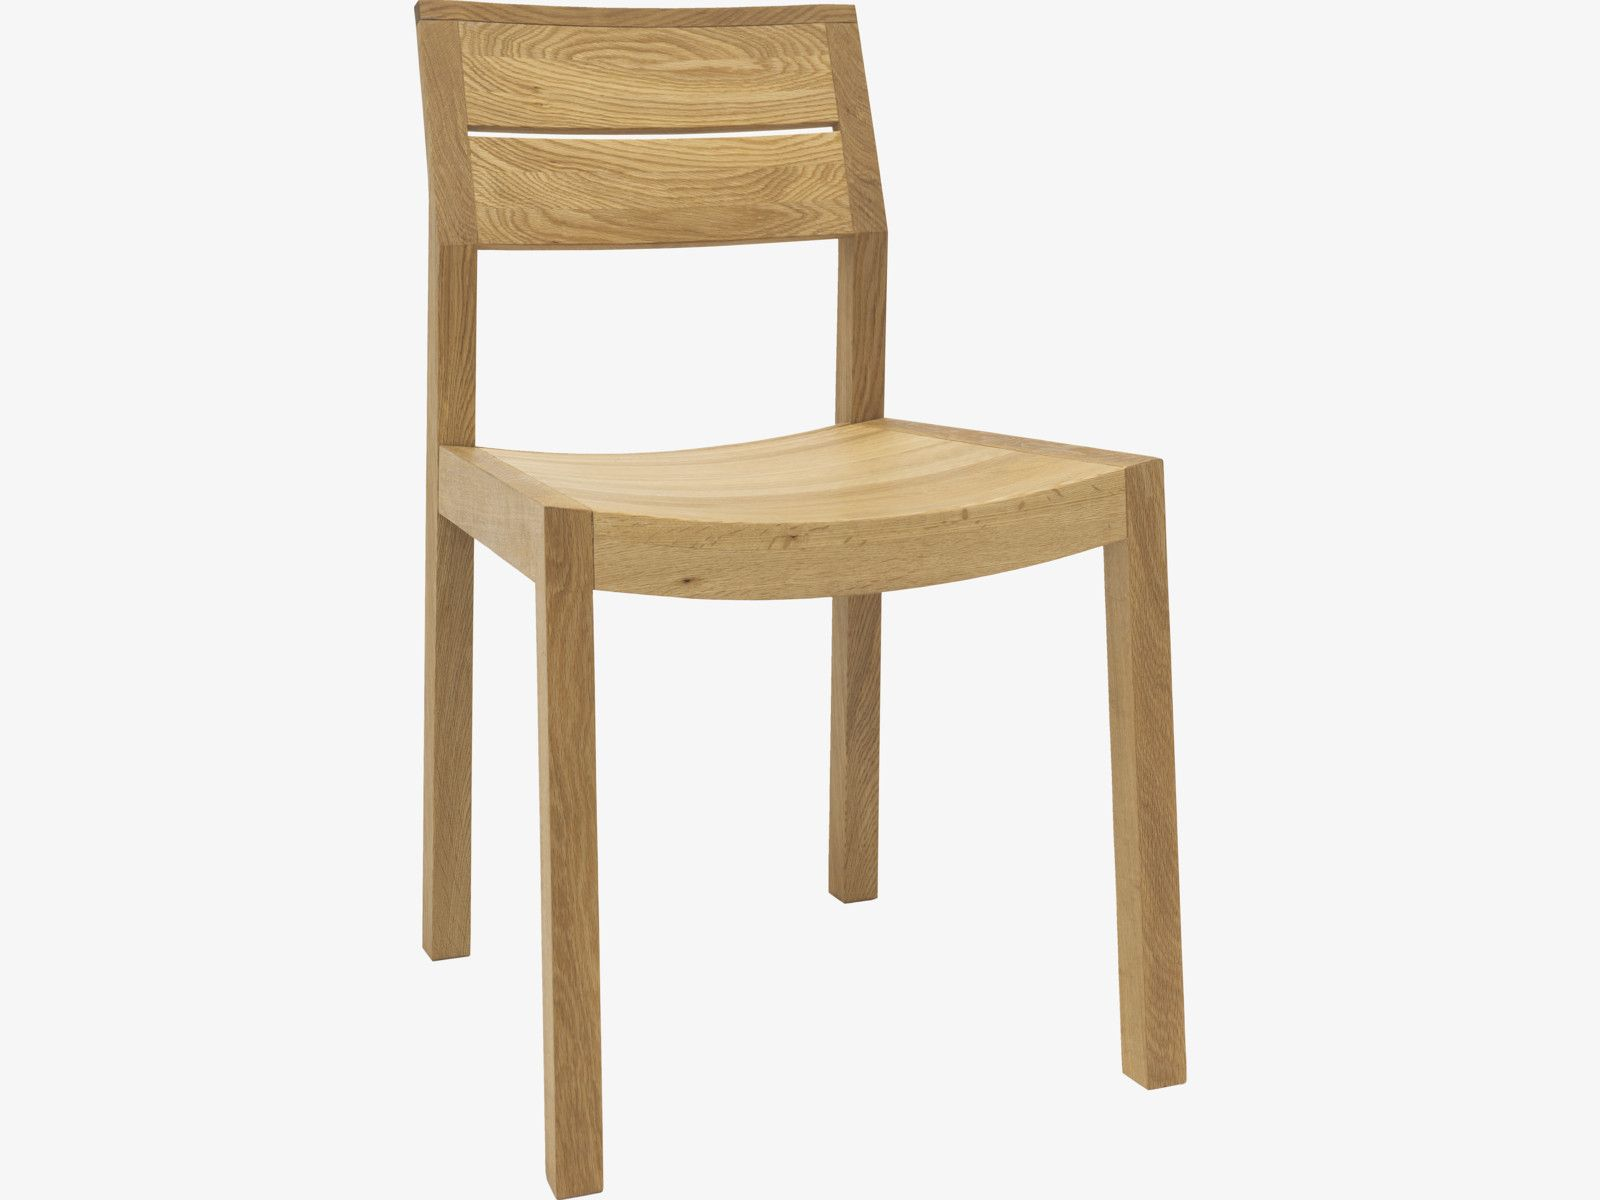 habitat dining room chair covers high leg recliner check out the new furniture and accessories from our